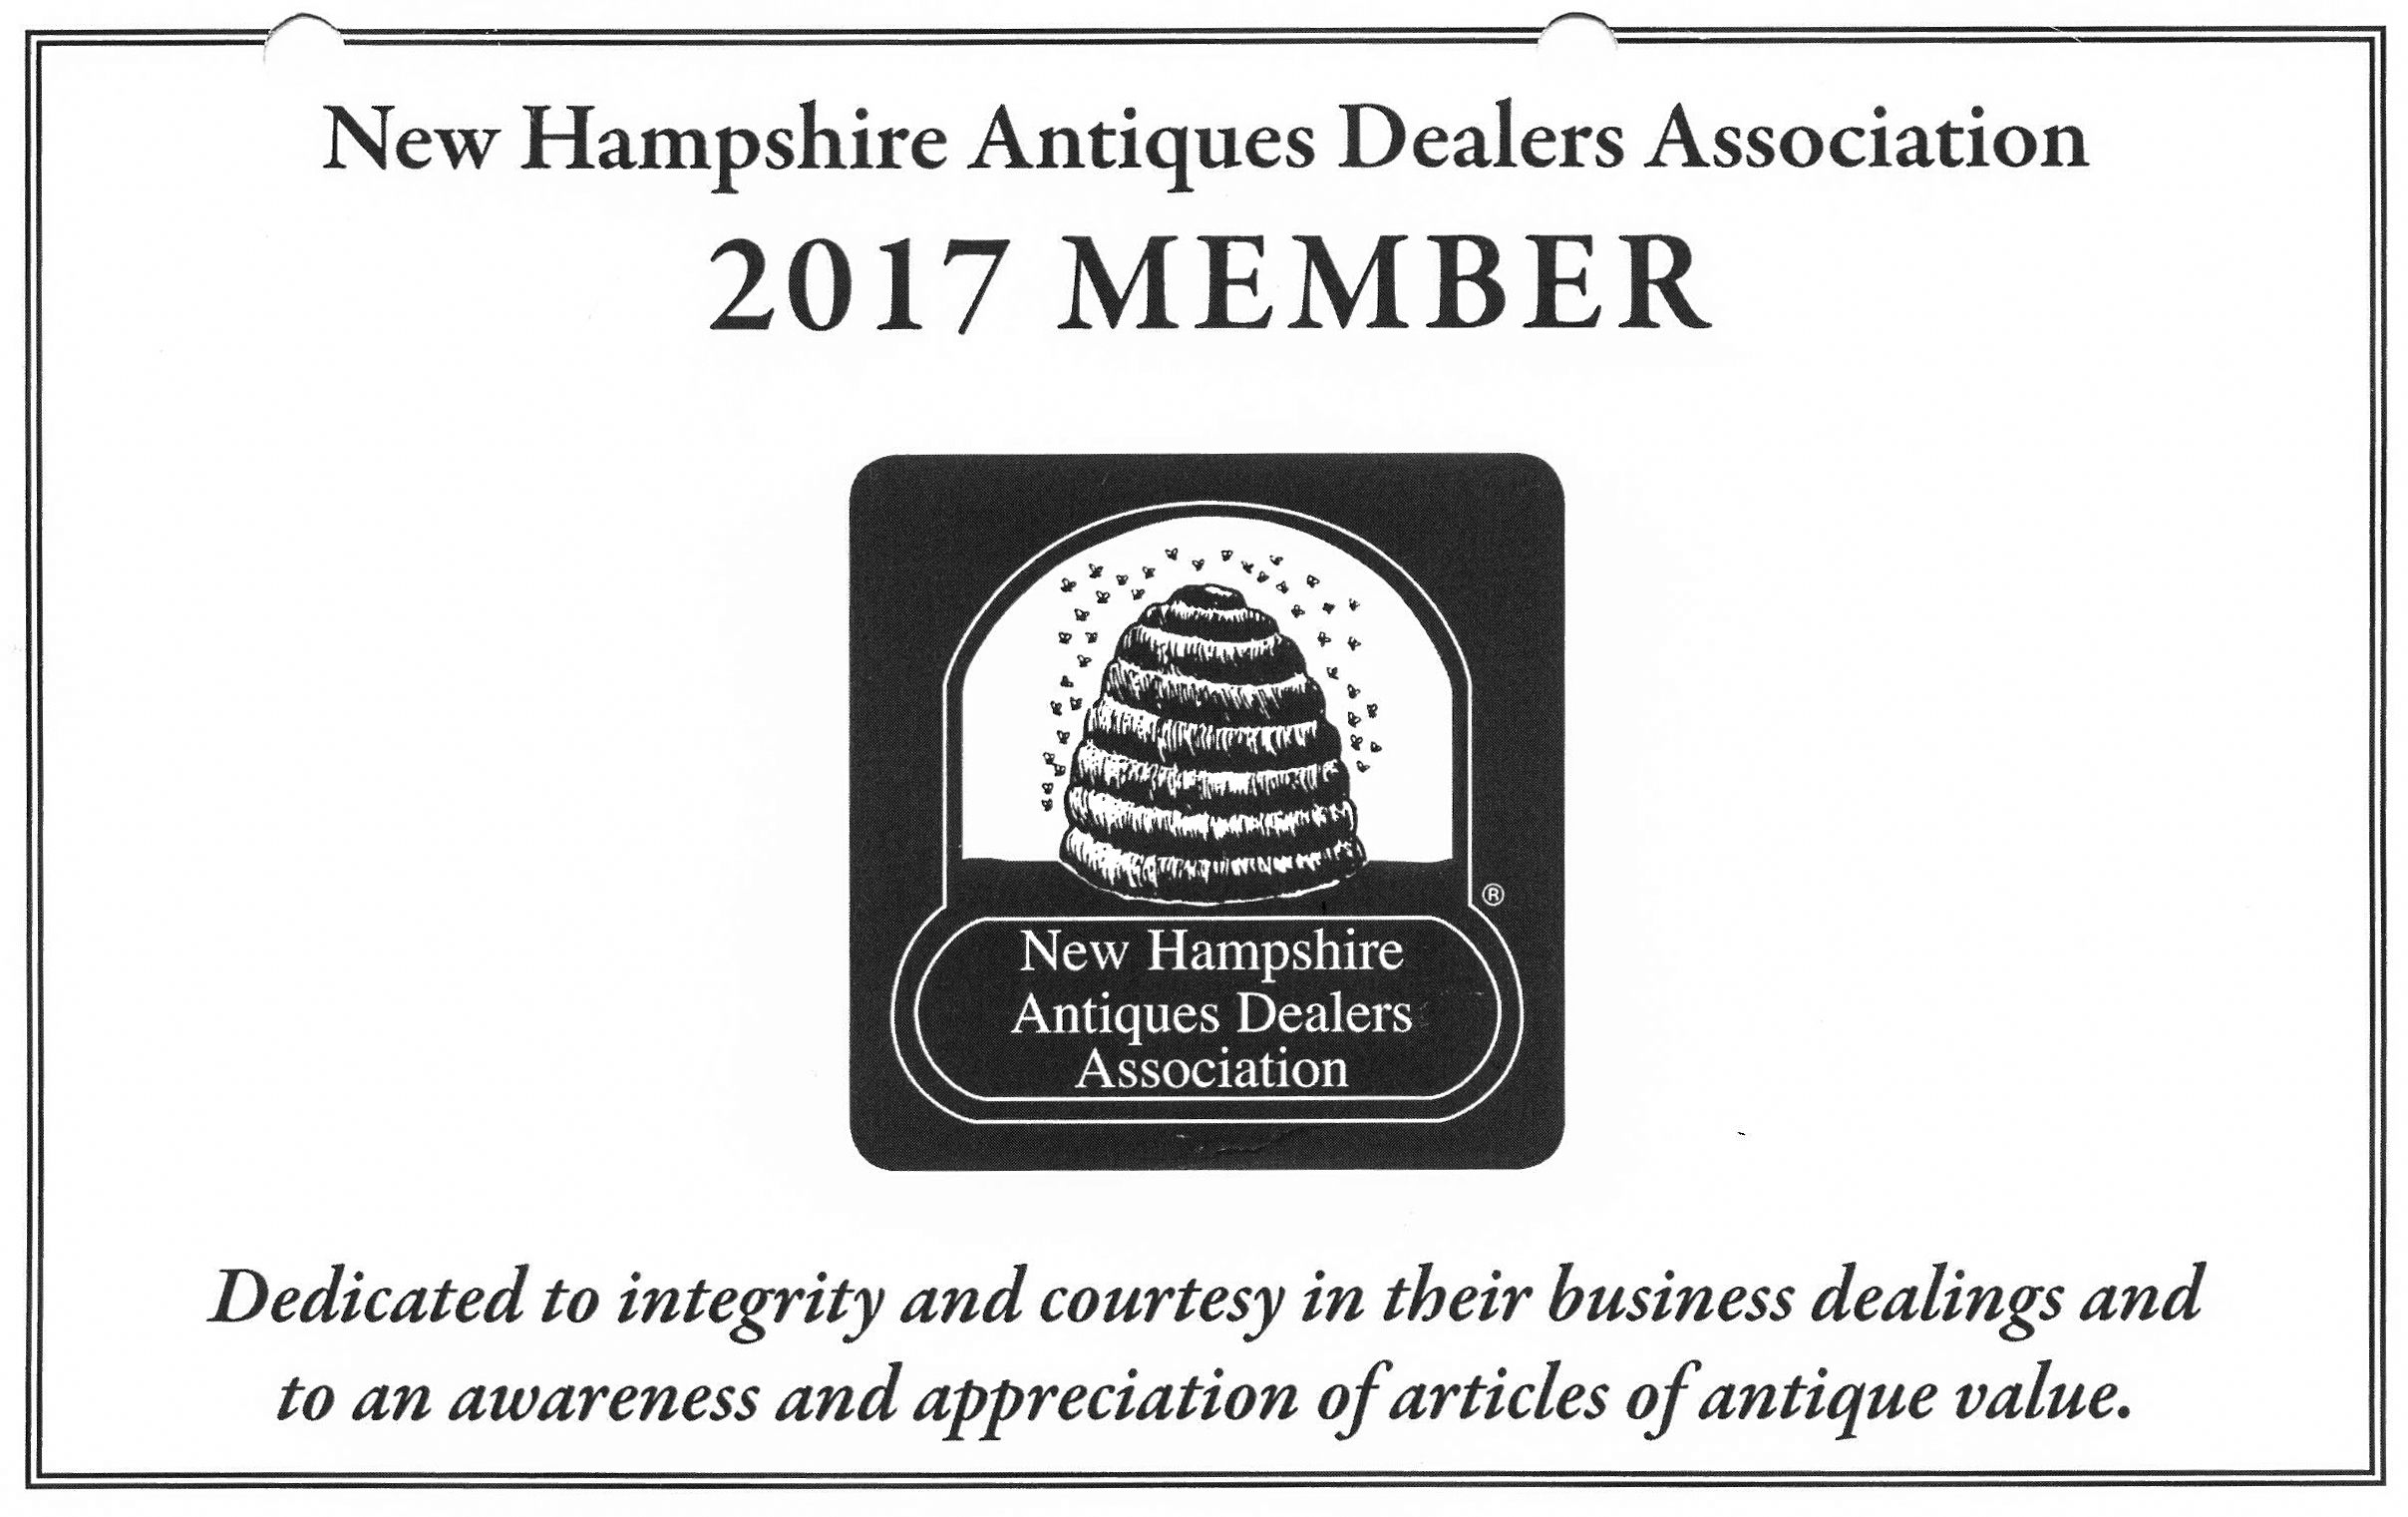 Fry Fine Art is a proud member of the New Hampshire Antique Dealers Association